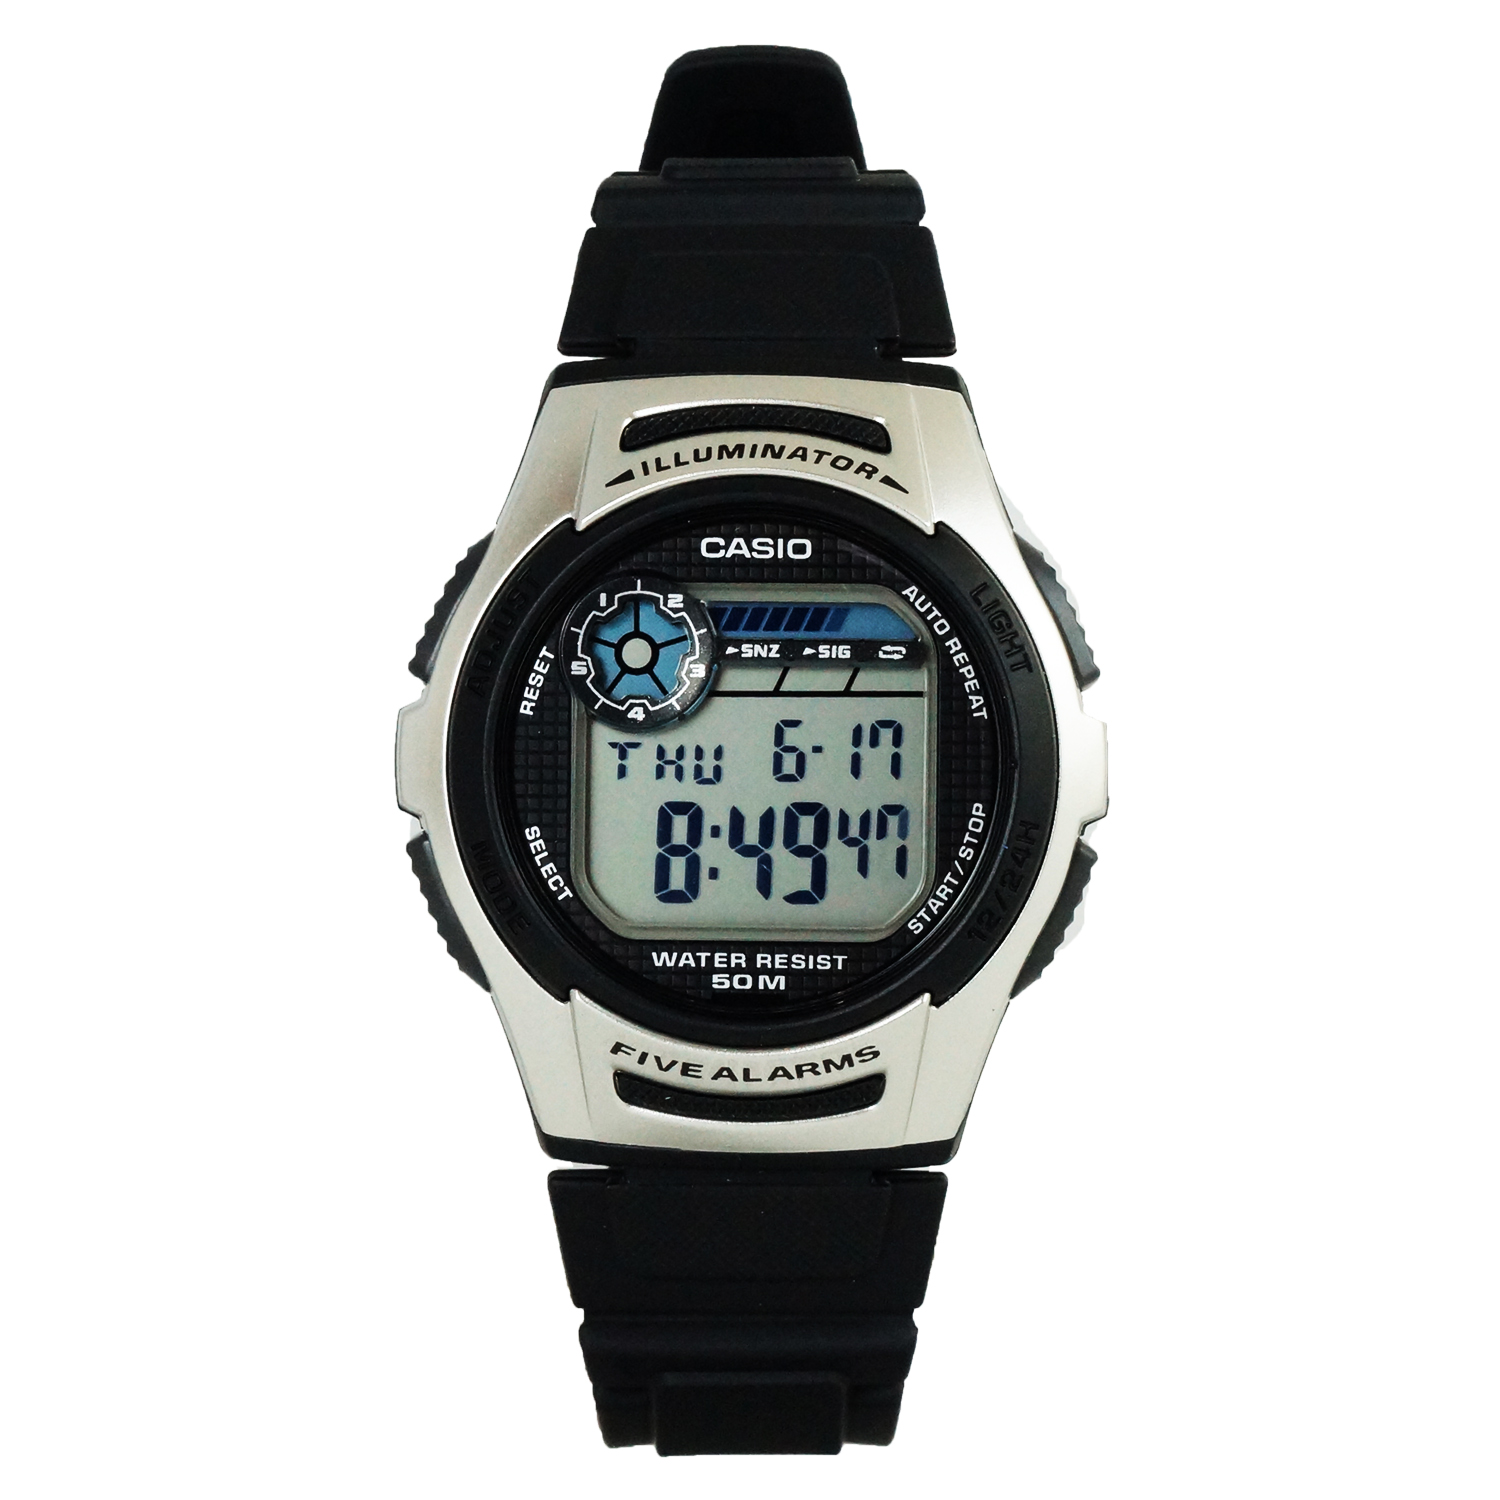 watch g pu round india mt analog strap black in watches paris price buy product img sports digital